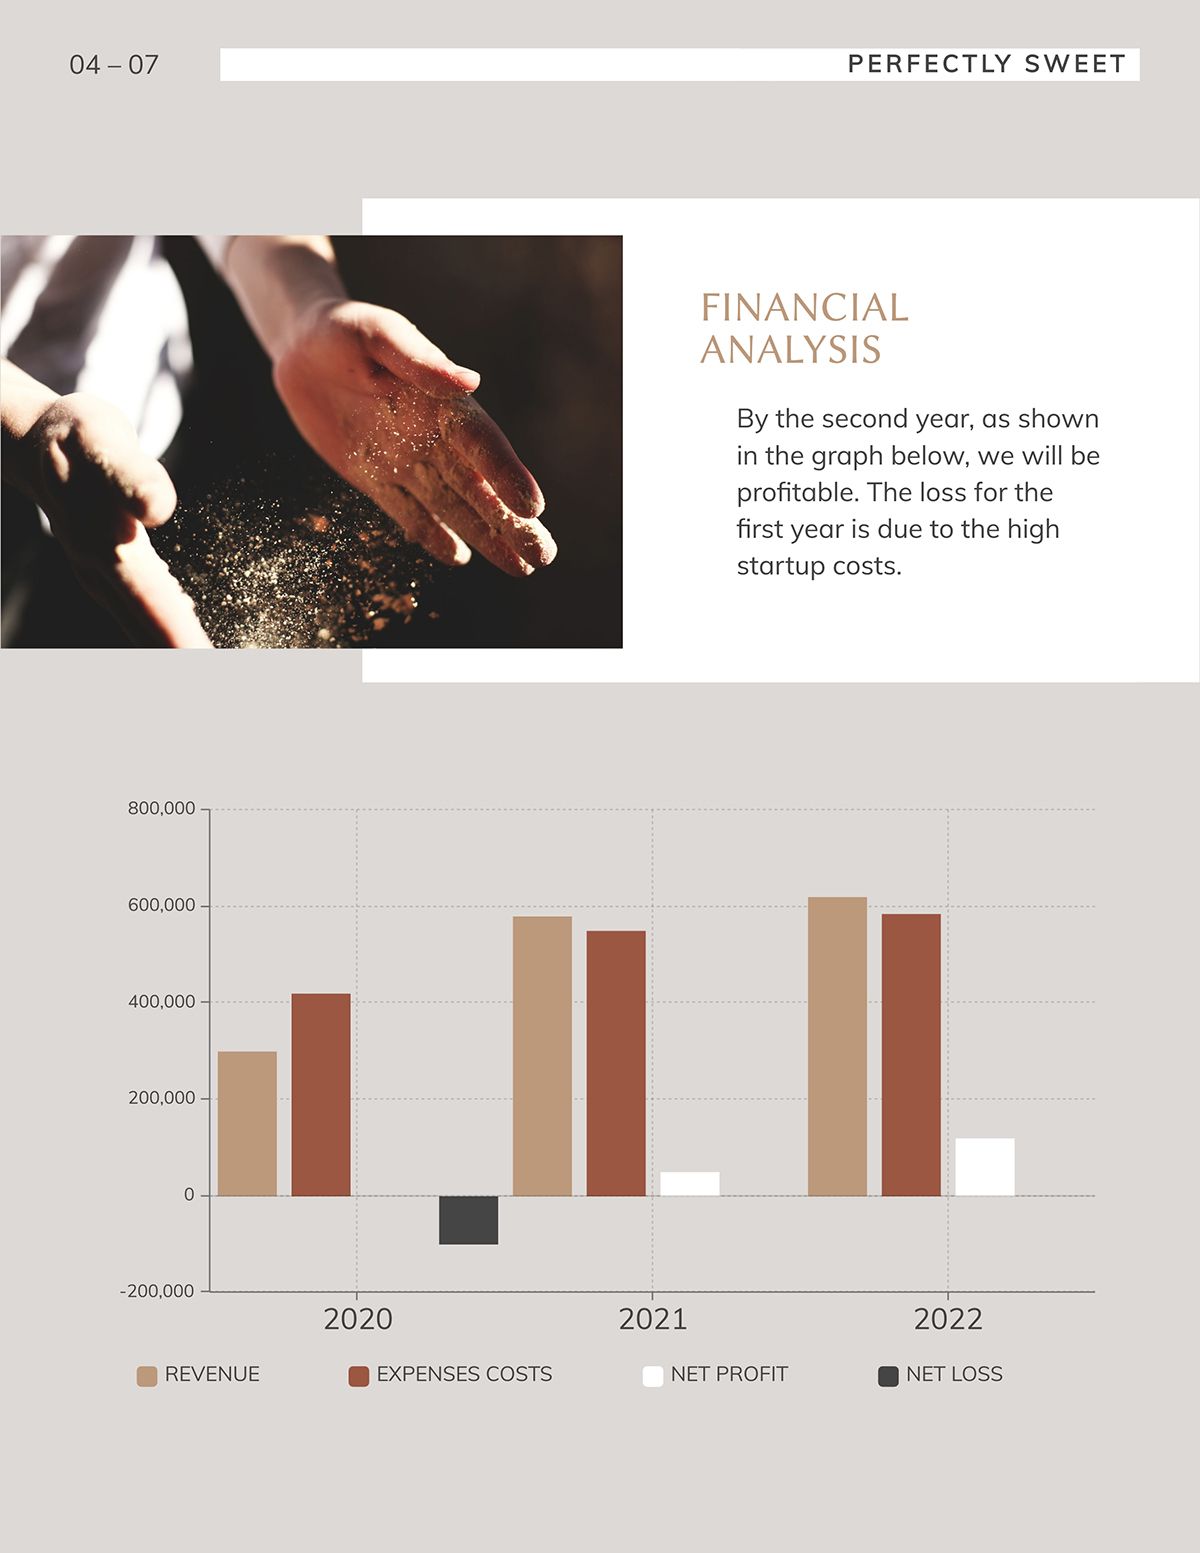 A financial analysis page from a business plan template.